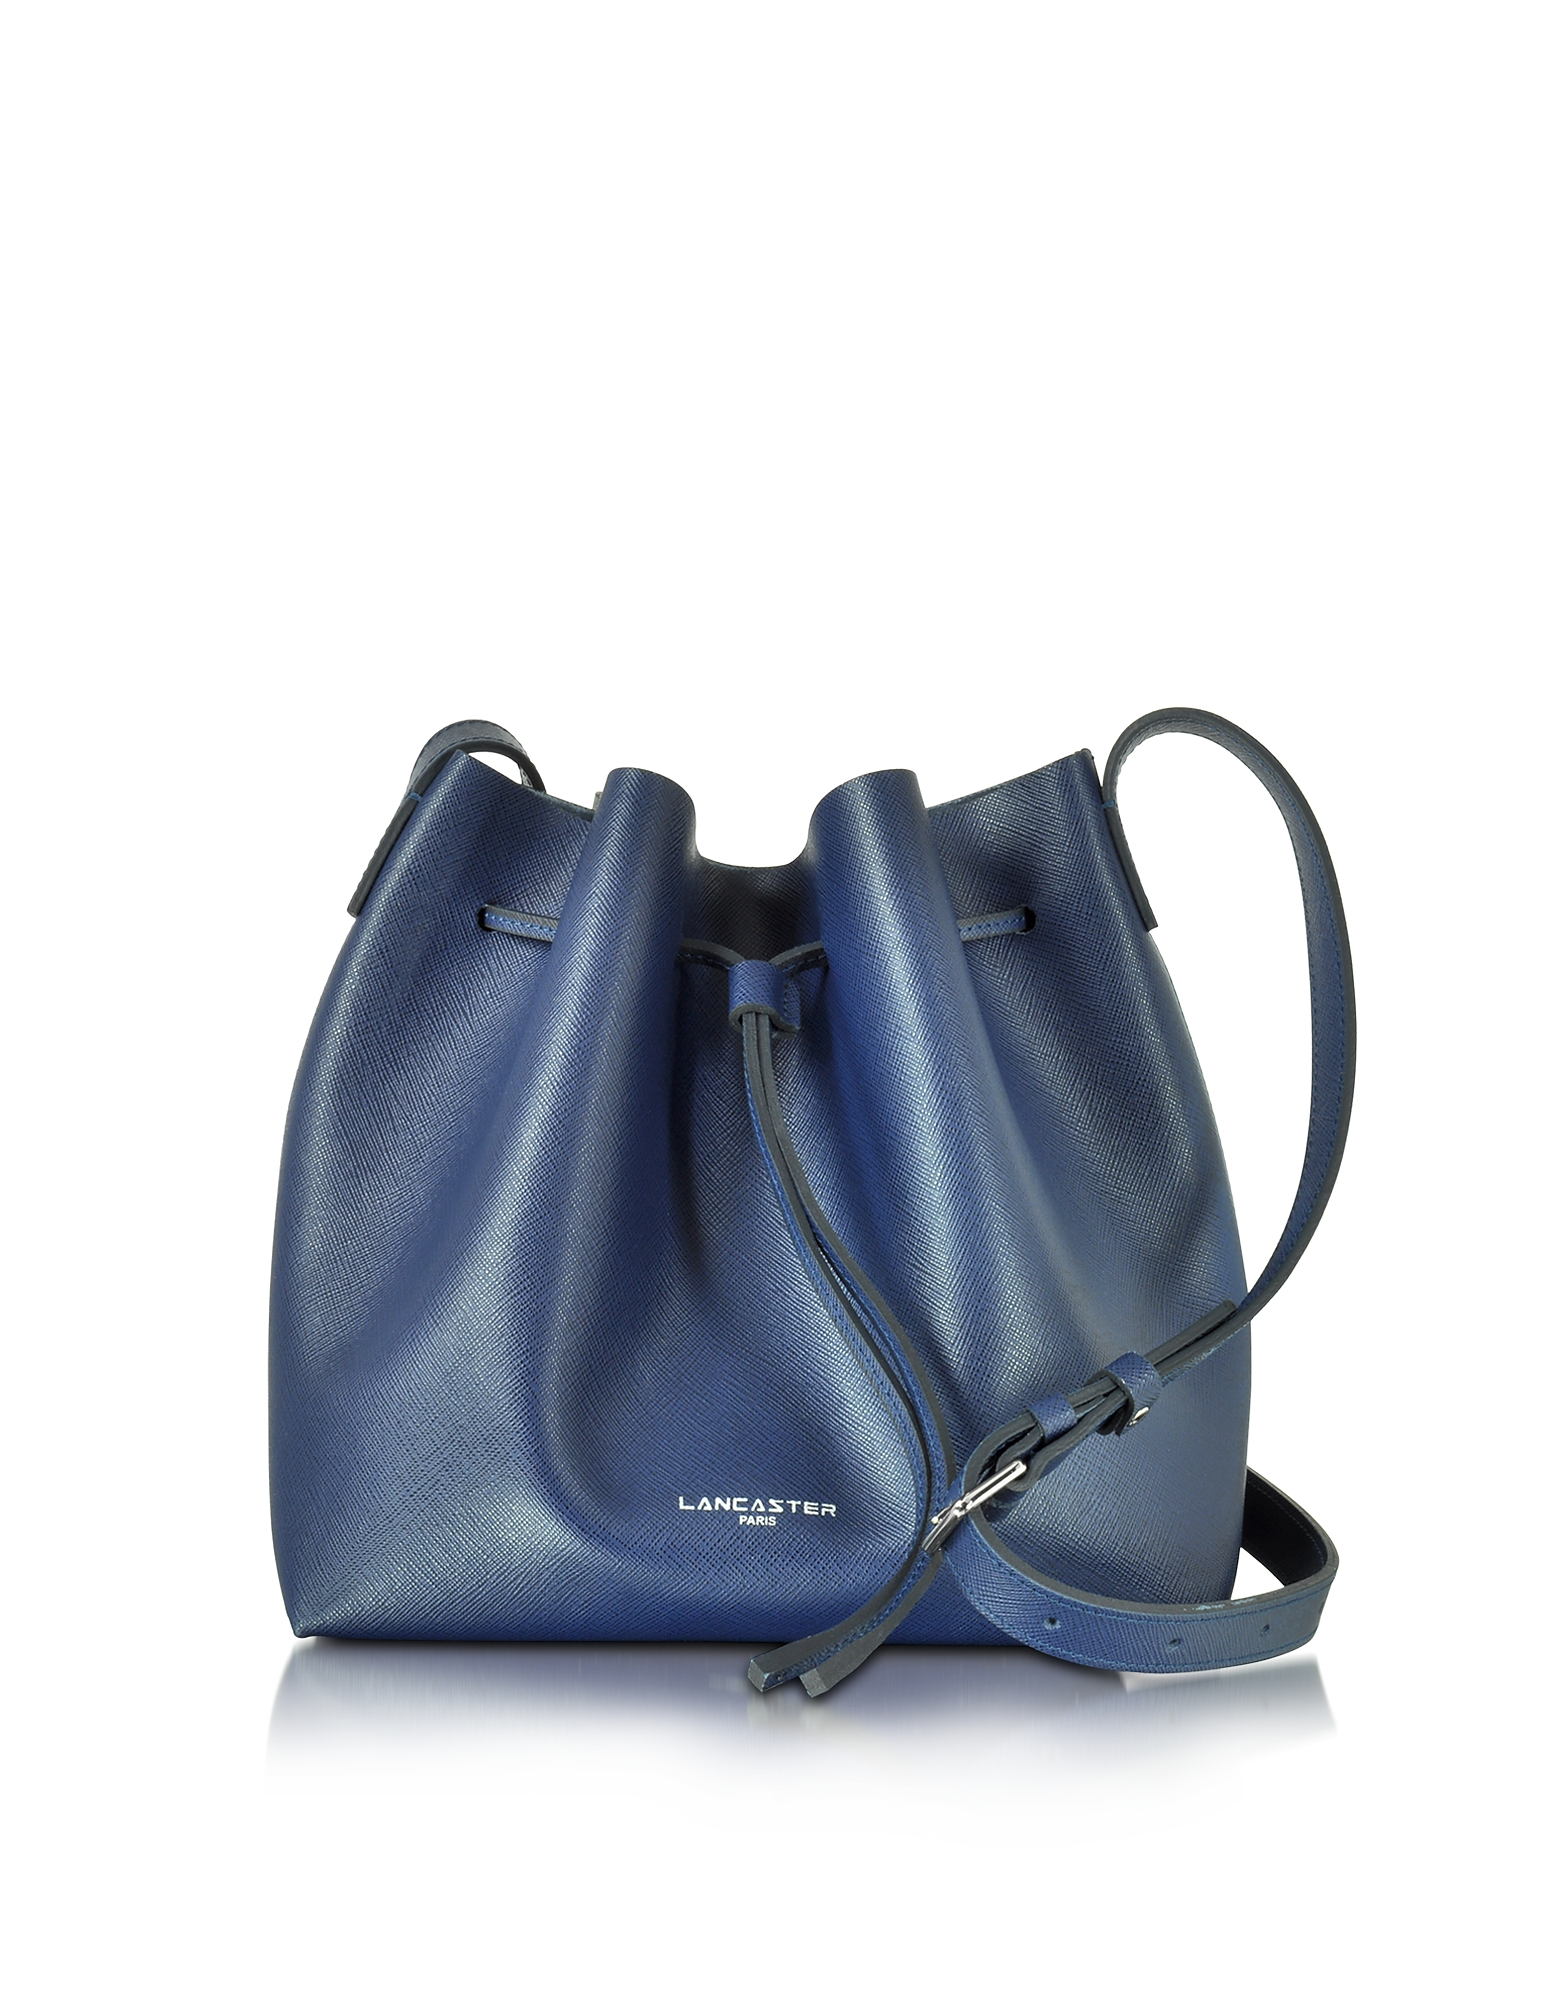 Lancaster Paris Handbags, Pur & Element Saffiano Calf-Leather Bucket Bag